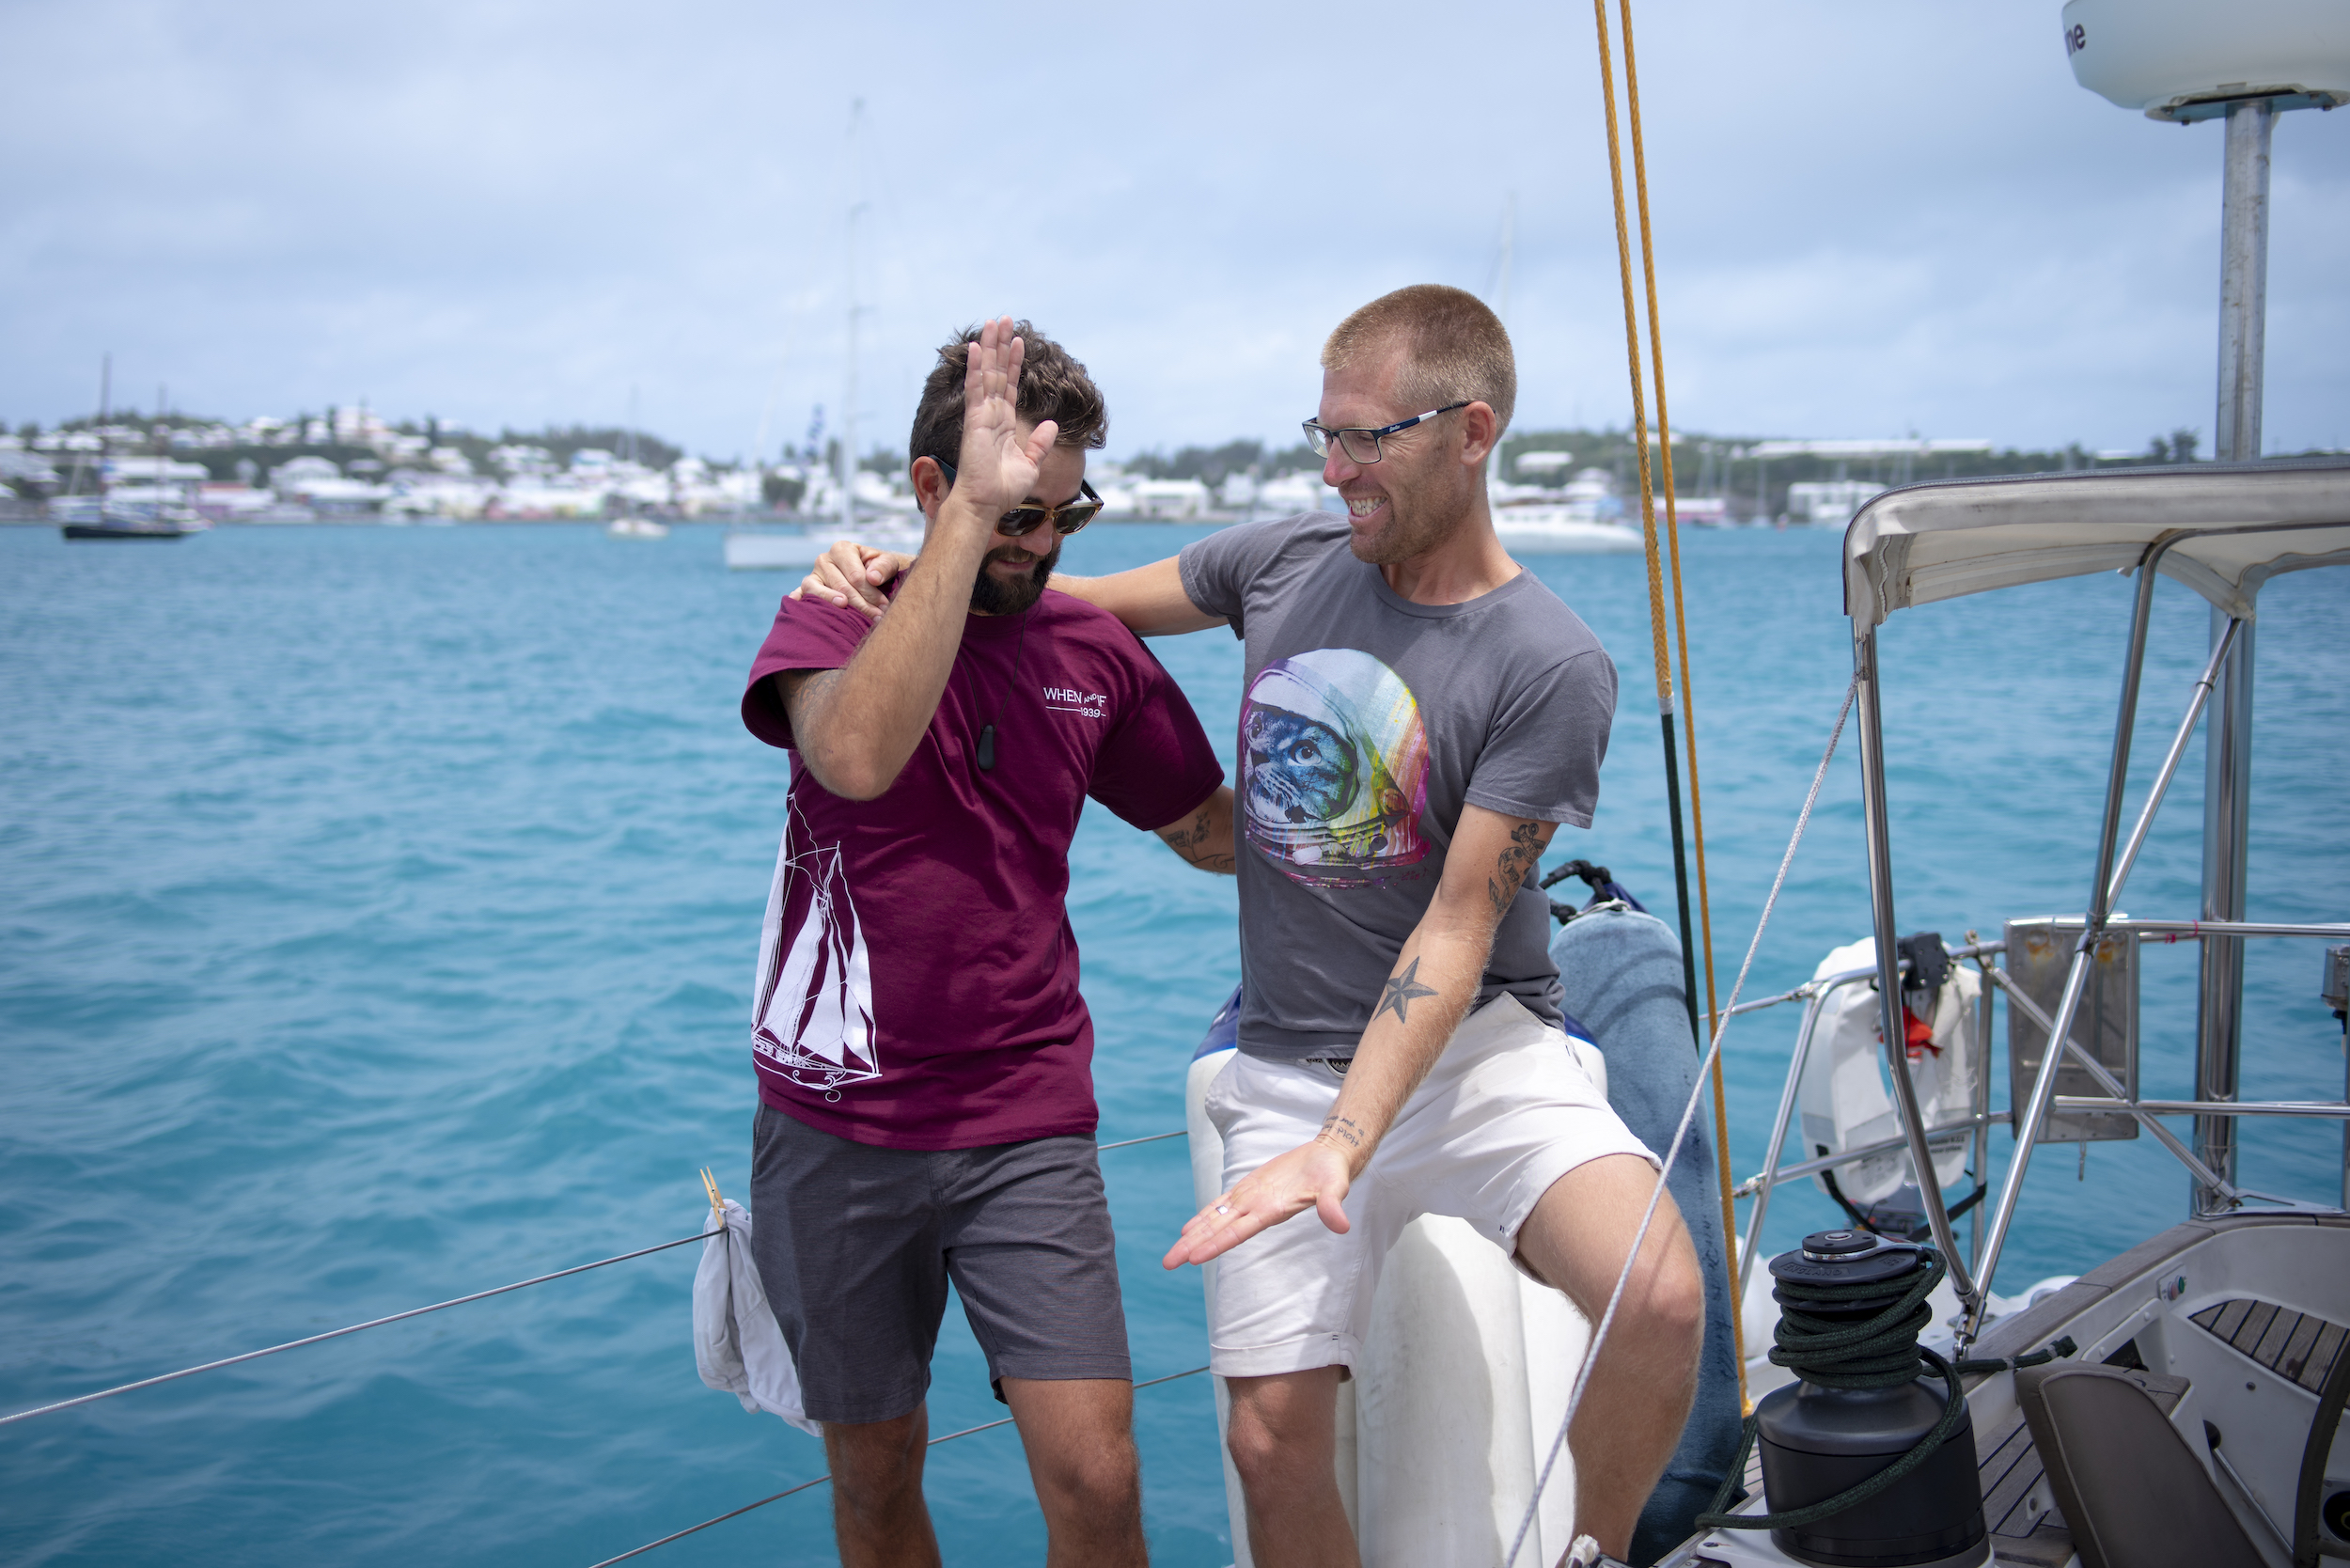 Too much fun with    Ben from Sail Bainbridge    in Bermuda! He was ISBJORN's mate on the passage with Matt Rutherford as skipper.